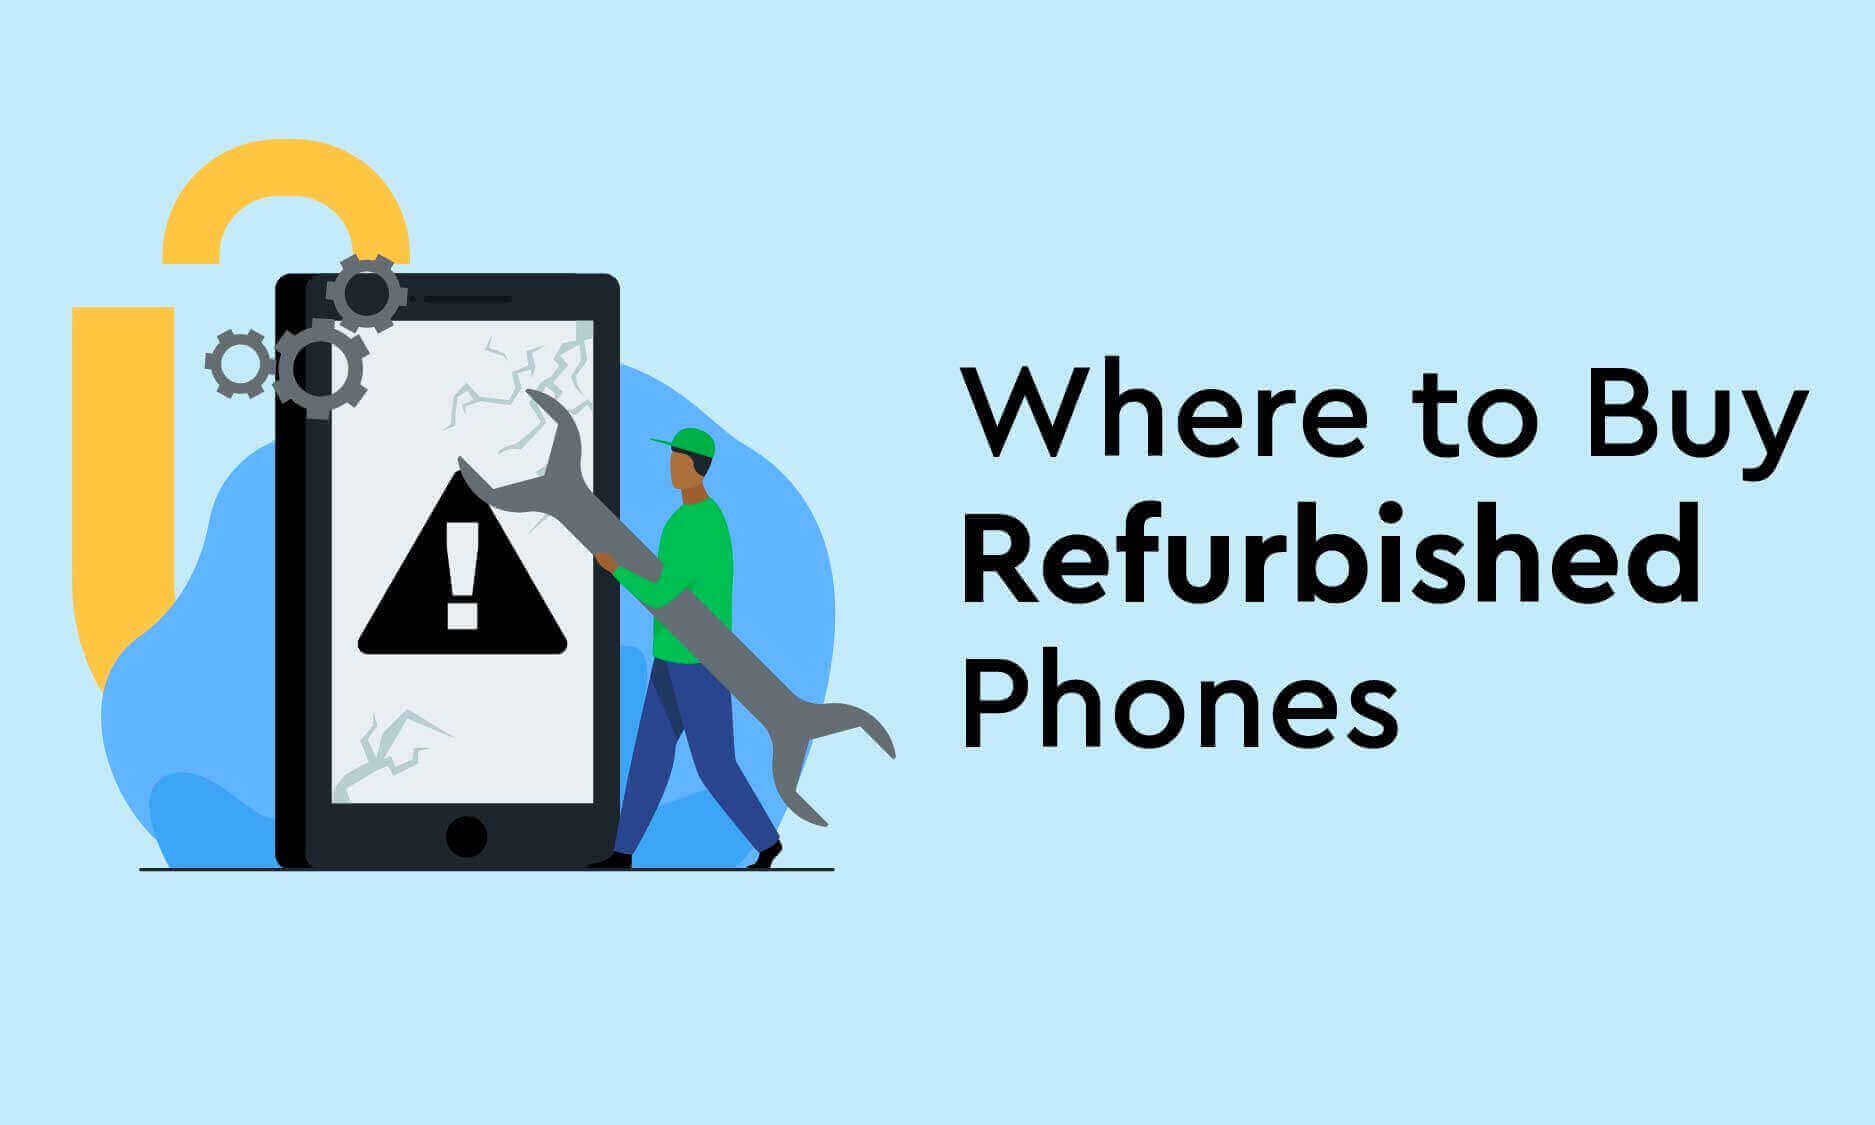 Where to Buy Refurbished Phones: Spotting a Shop With the Best Deals